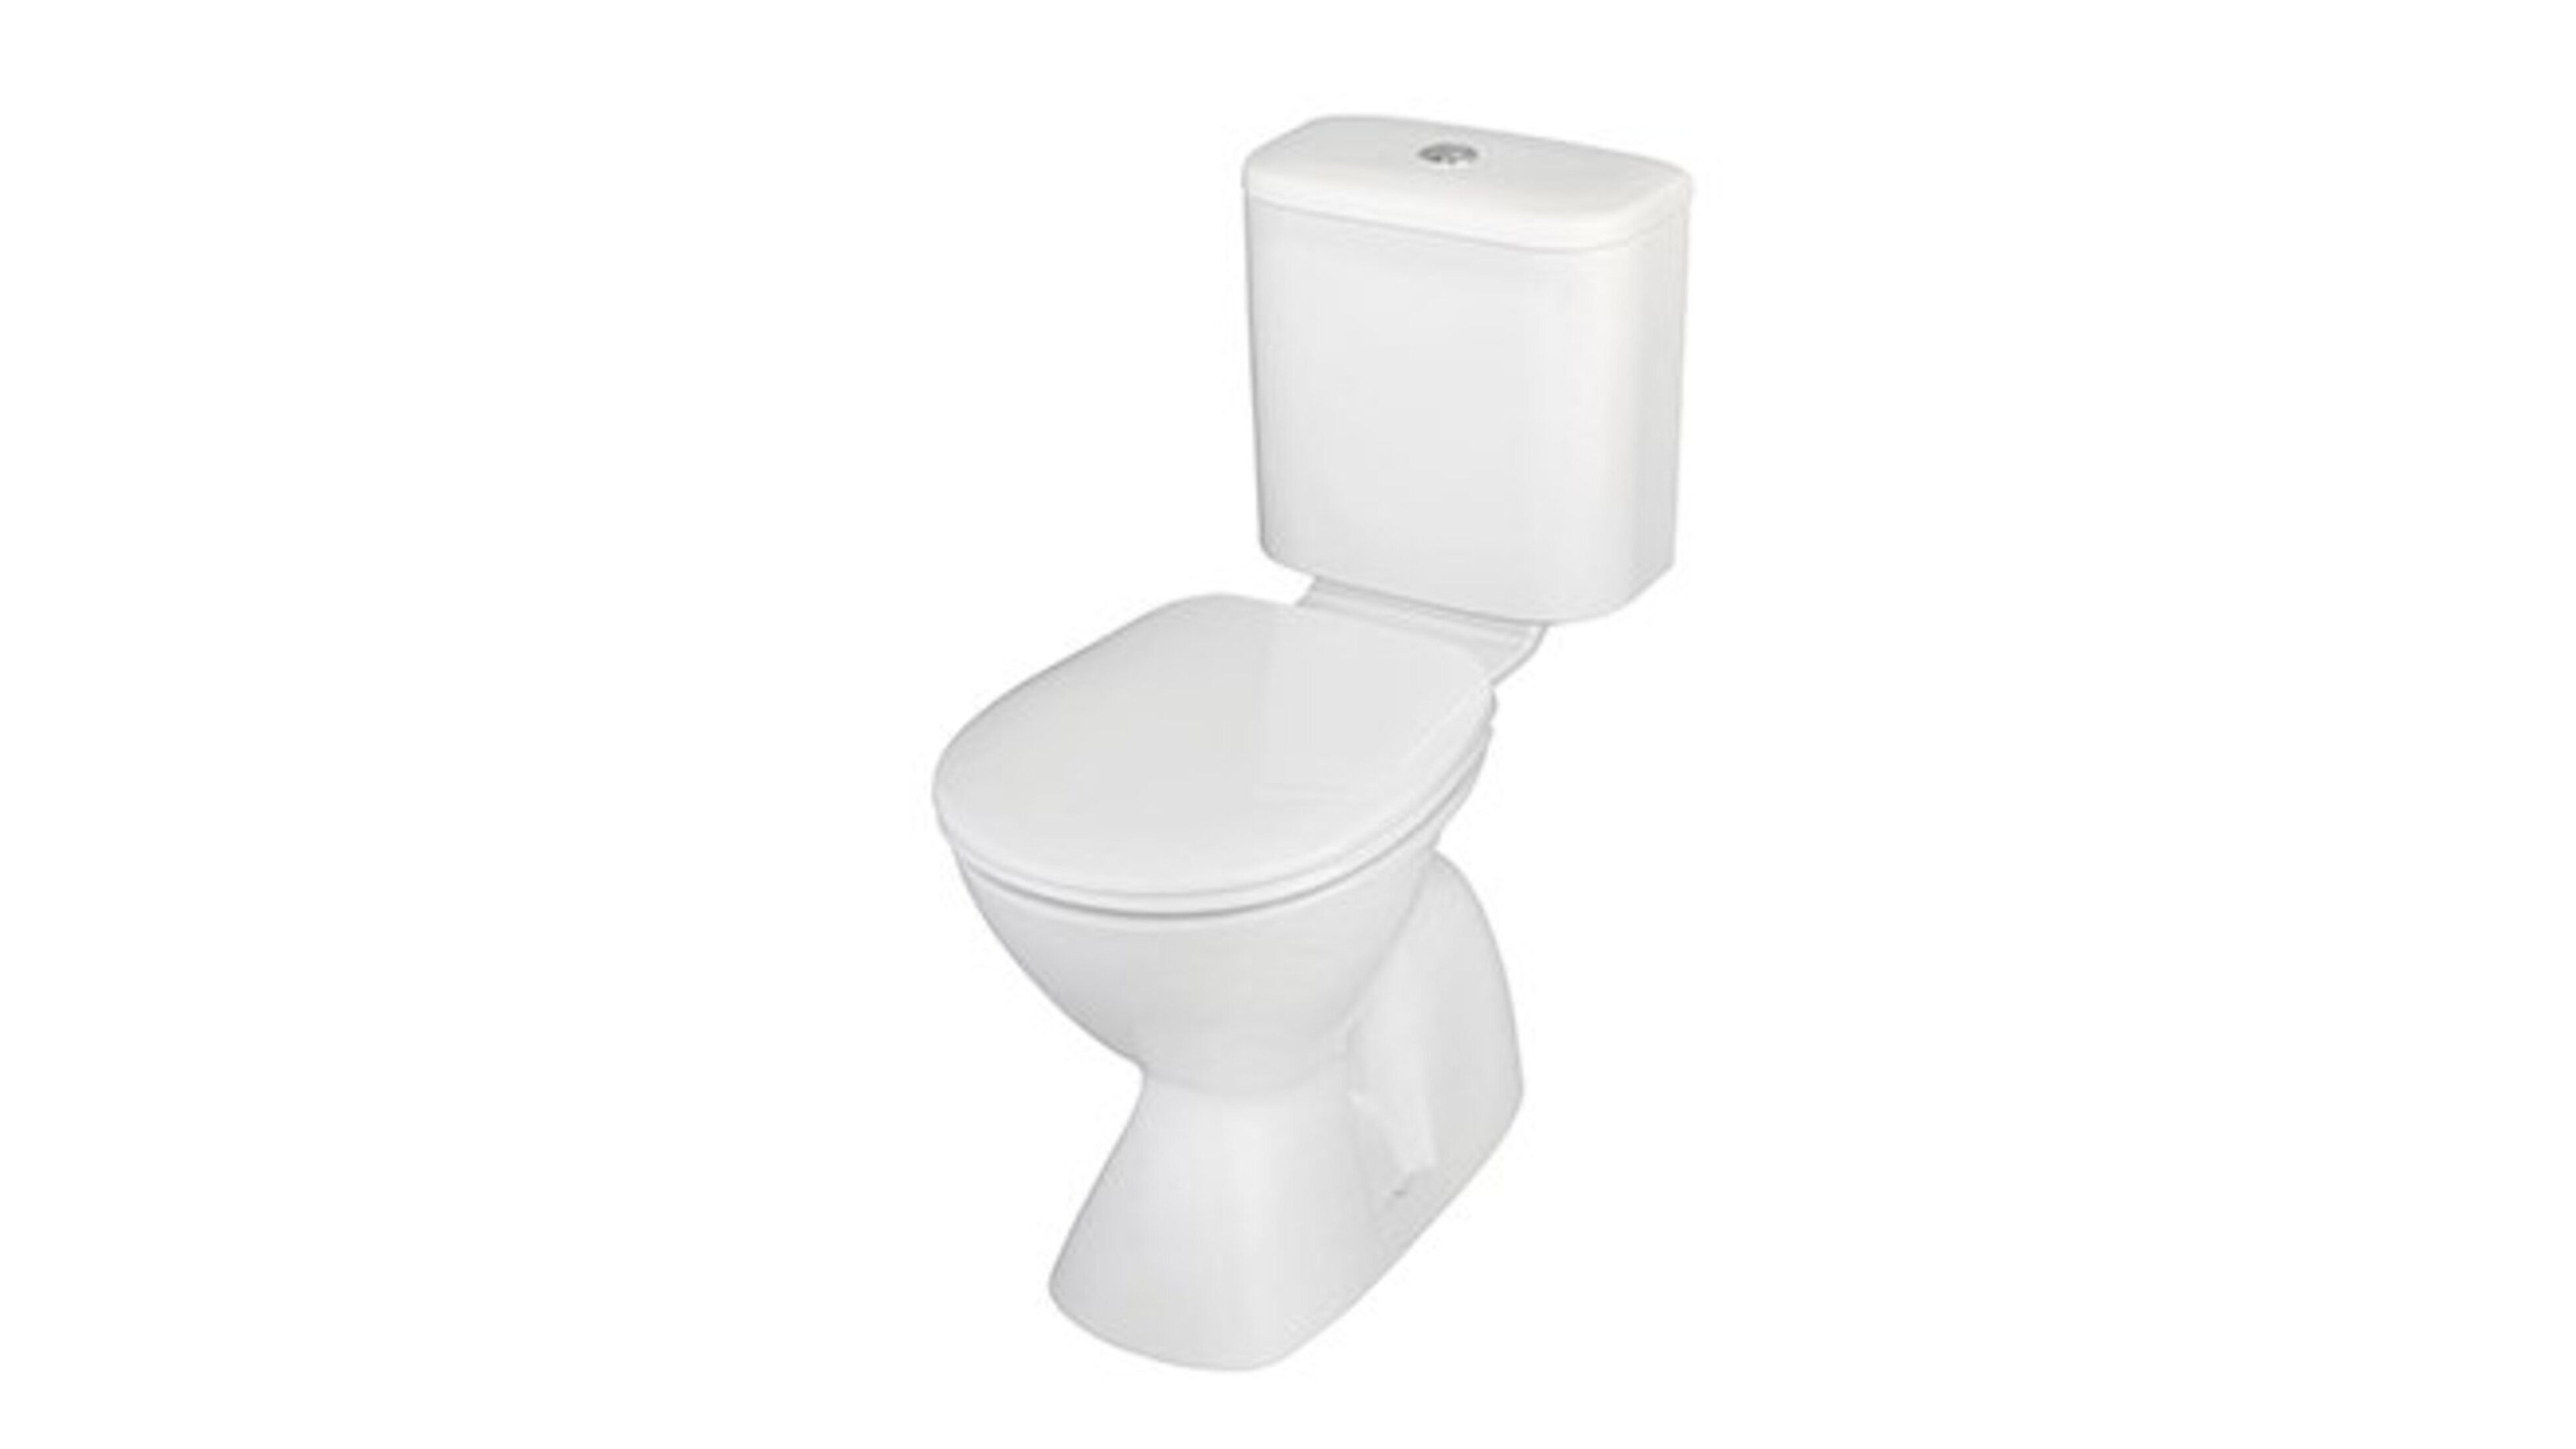 Stand alone toilet.